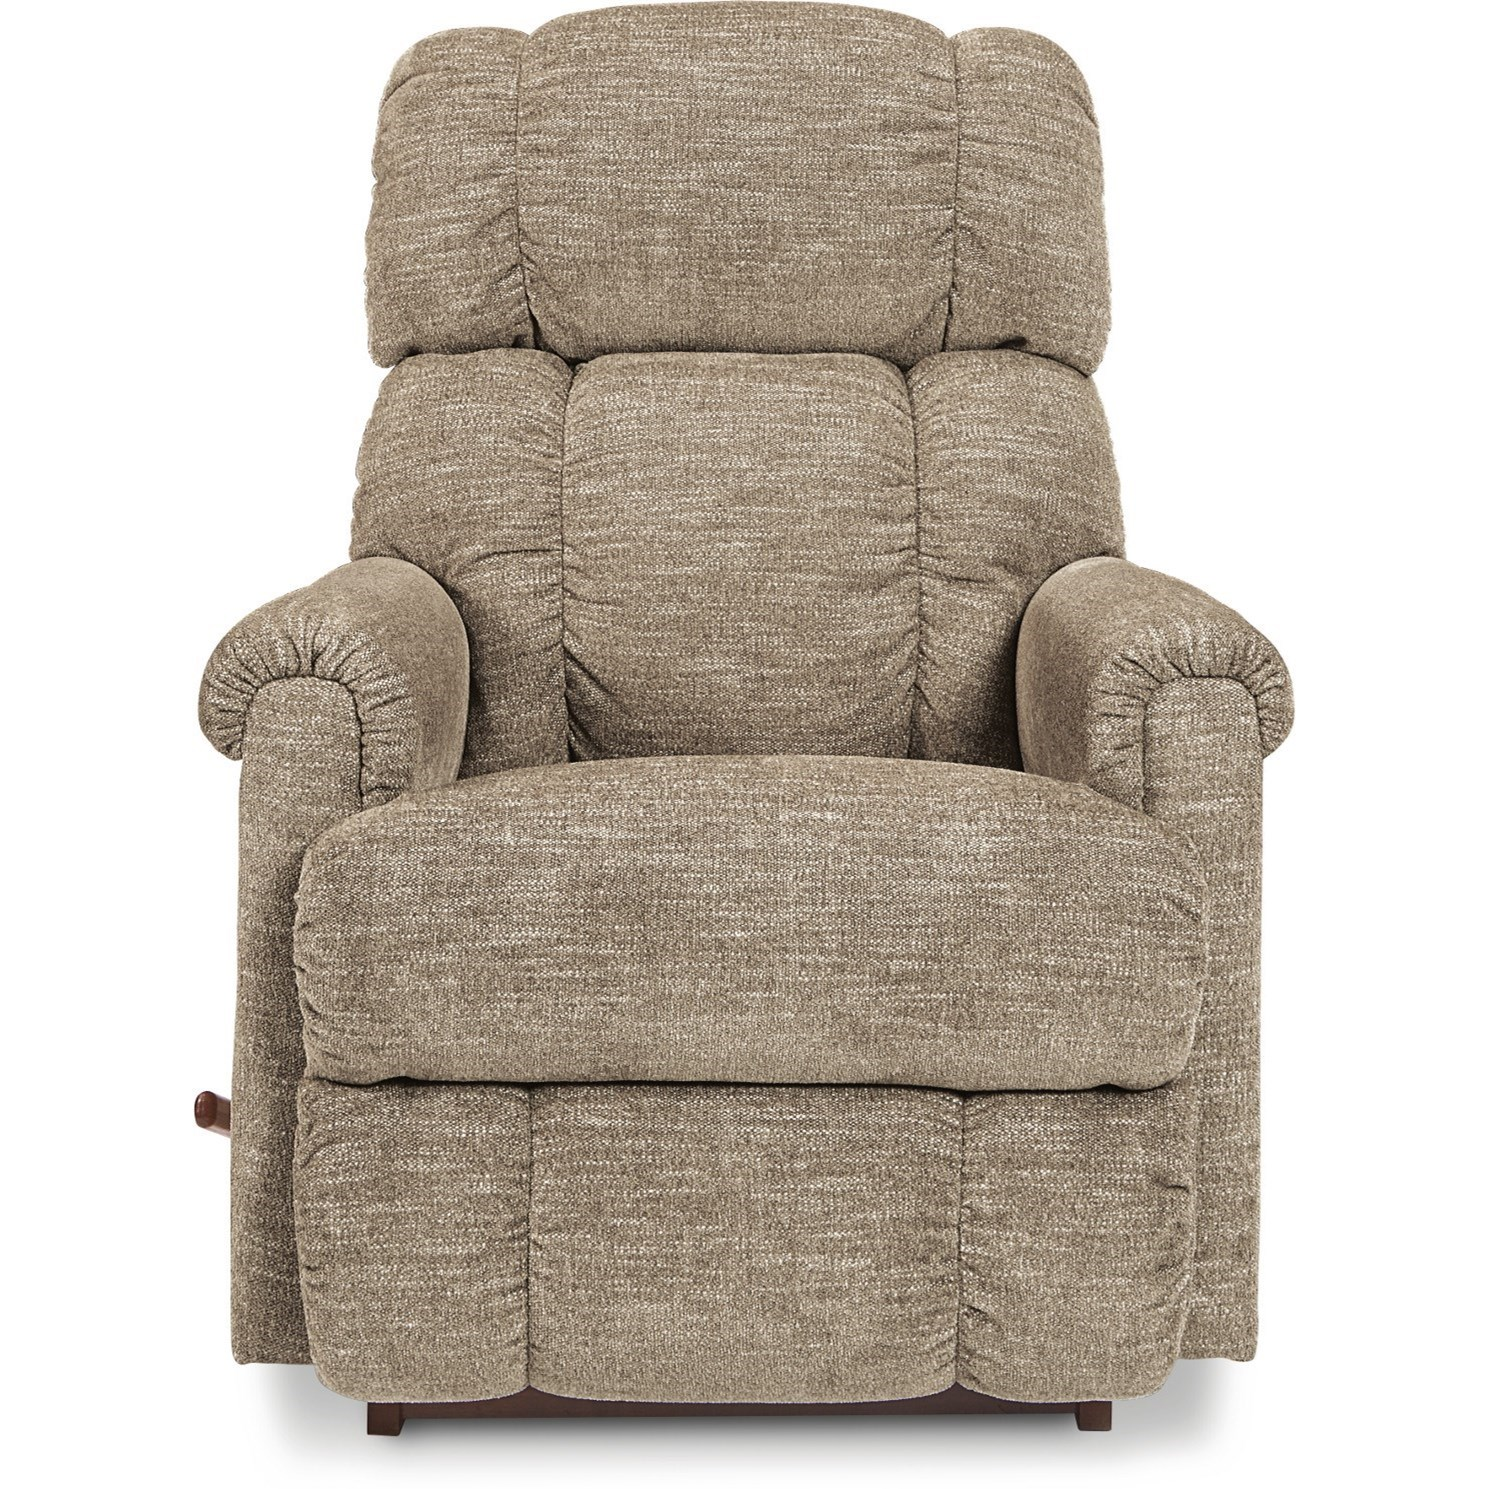 Pinnacle Rocking Recliner by La-Z-Boy at Godby Home Furnishings